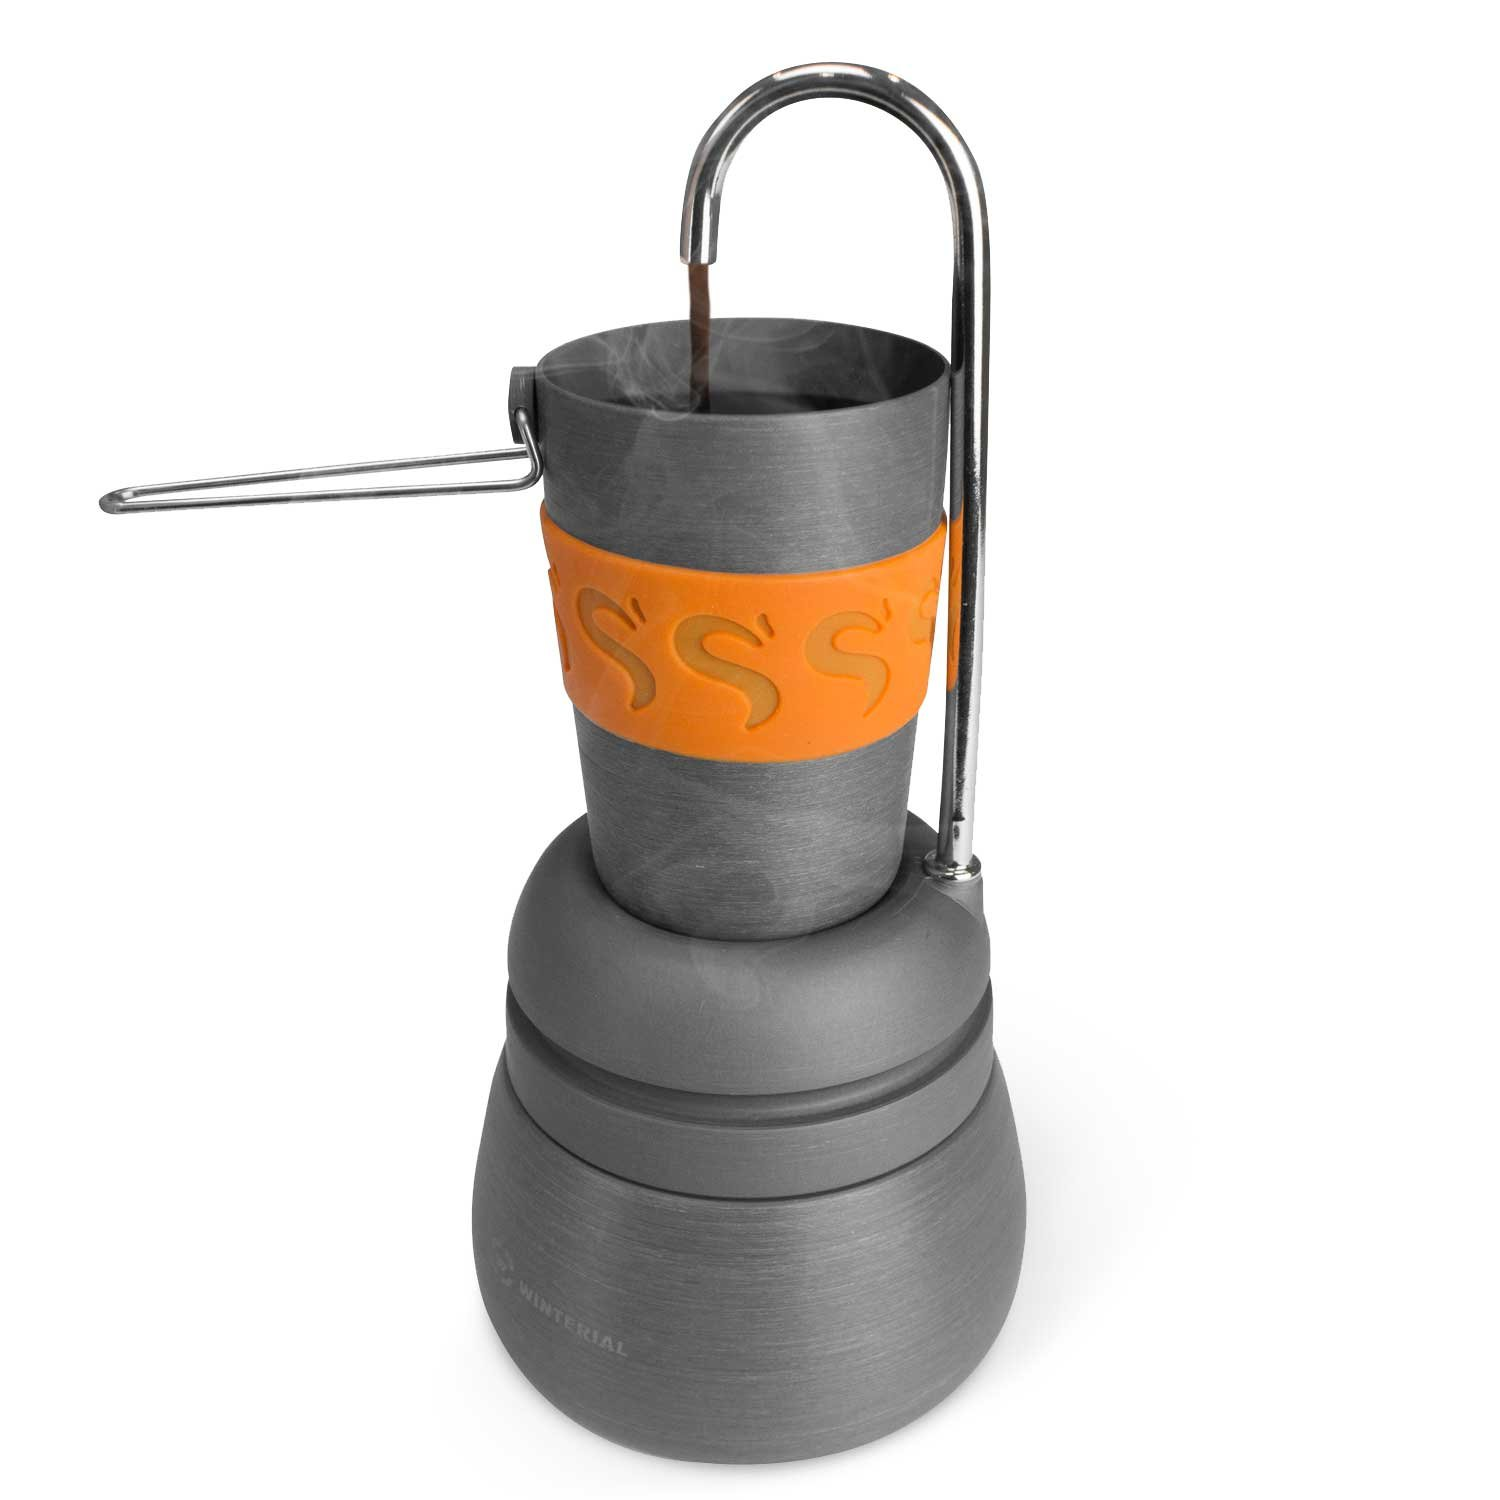 Winterial Percolator Coffee Maker, Compact, Cups Included, Coffee, Camping, Backpacking, Camping Coffee, Coffee Maker